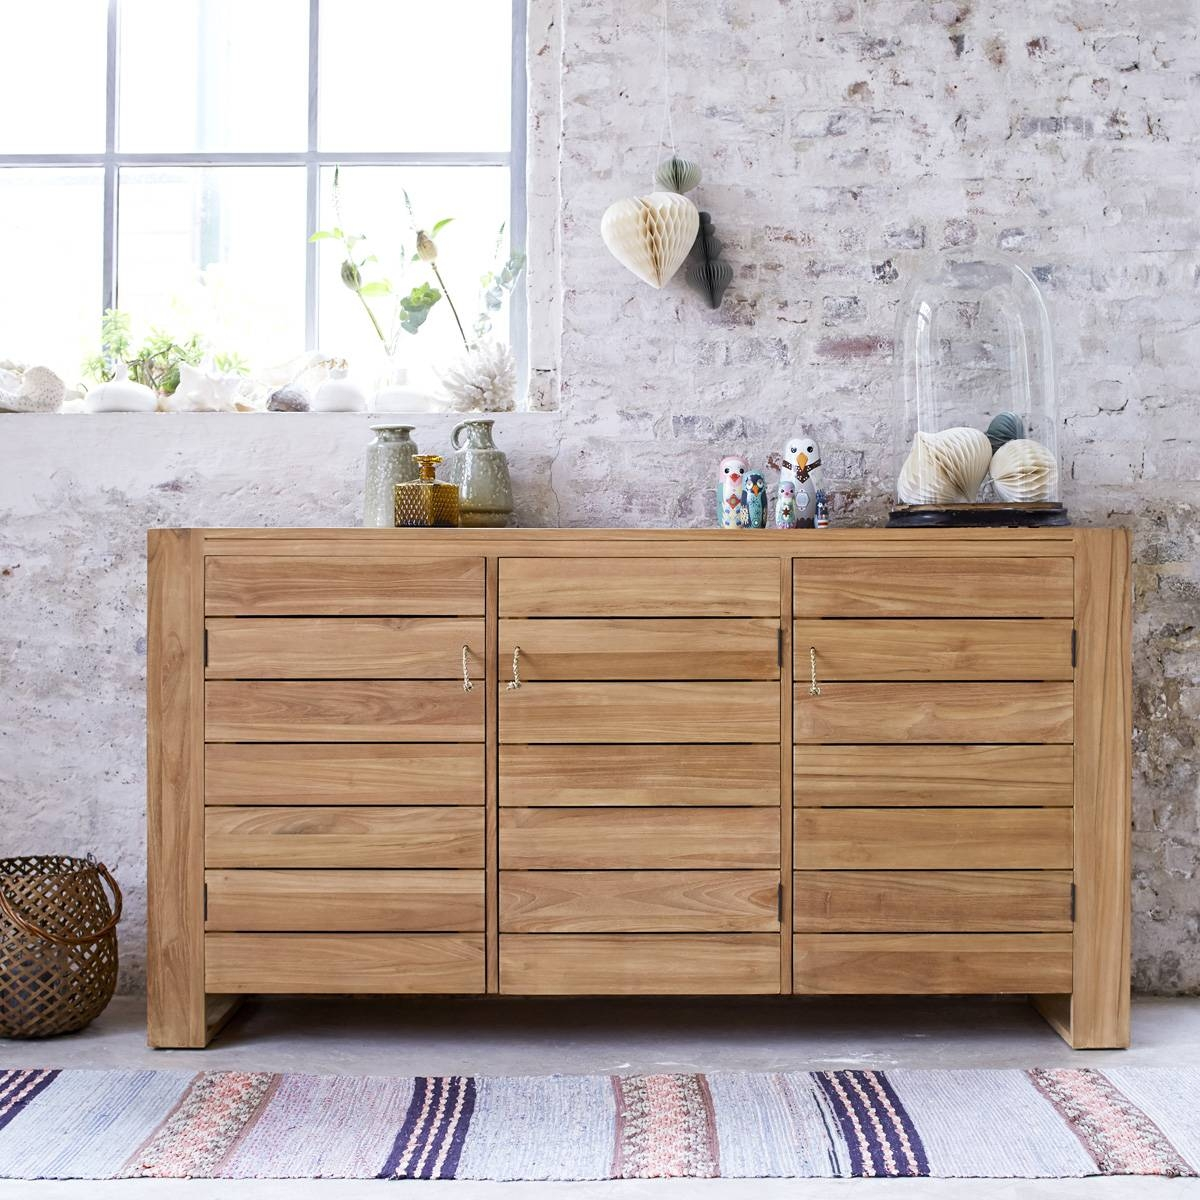 Low-Priced Solid Wood Sideboards - Exotic Wood Sideboards - Tikamoon pertaining to Real Wood Sideboards (Image 3 of 30)